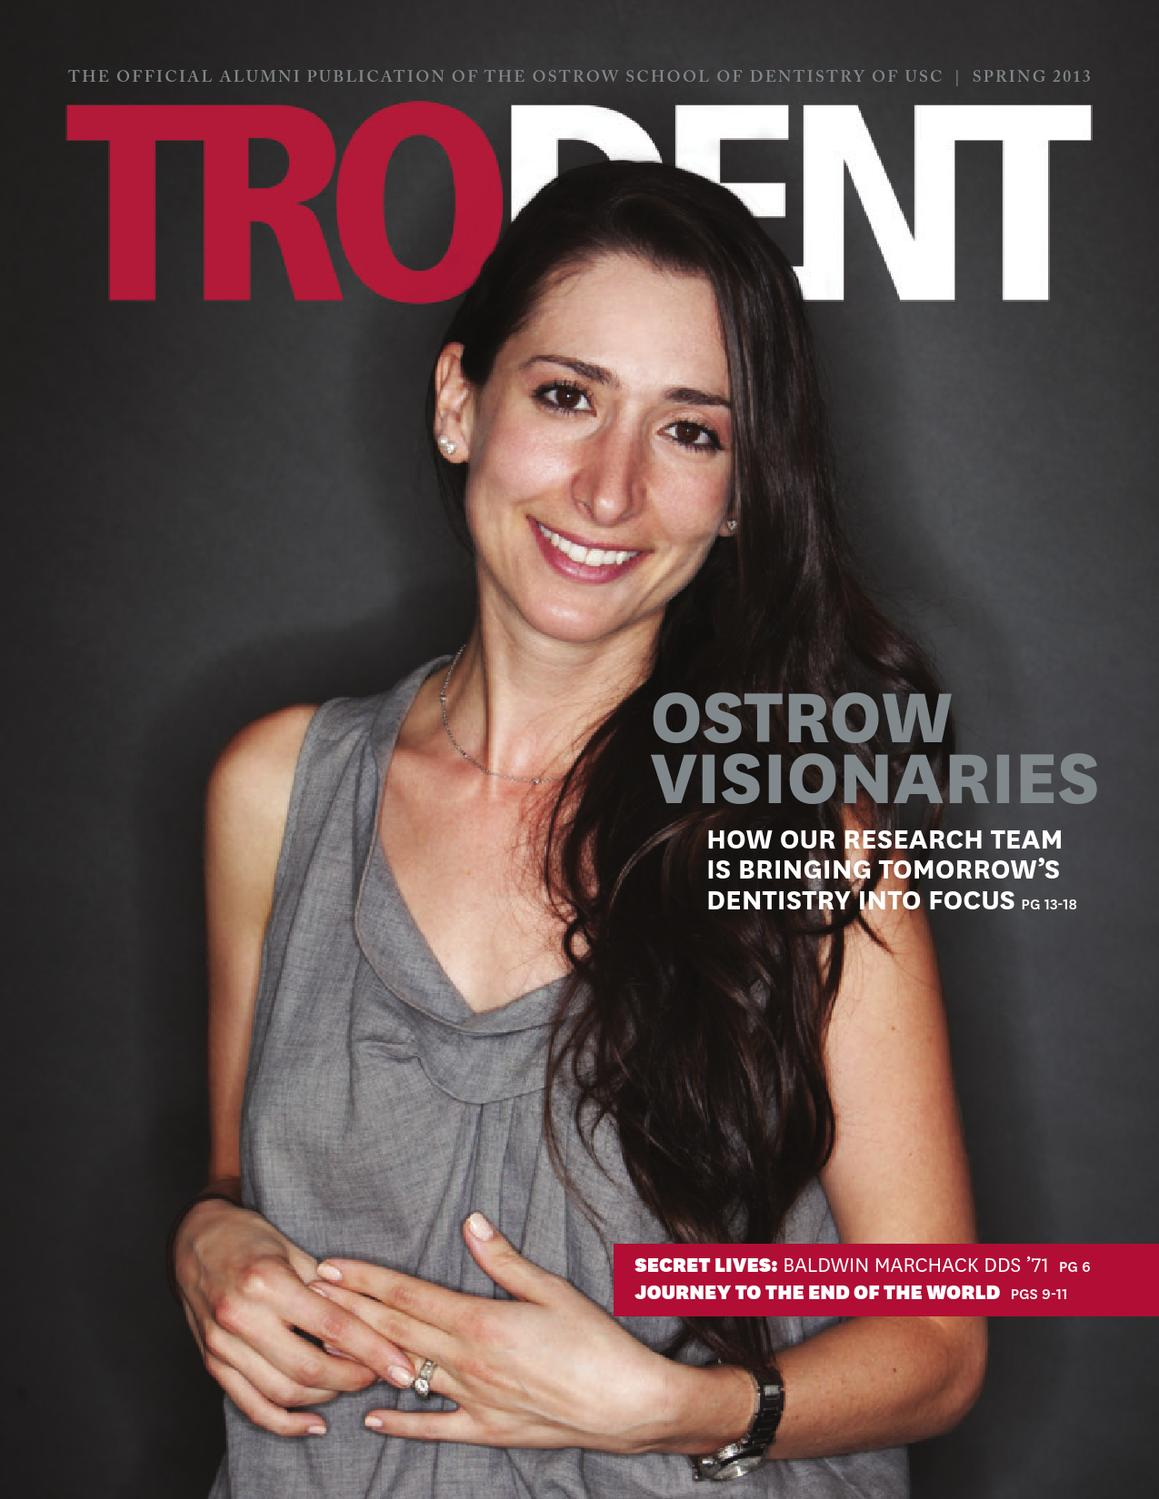 TroDent Spring 2013 by Herman Ostrow School of Dentistry of